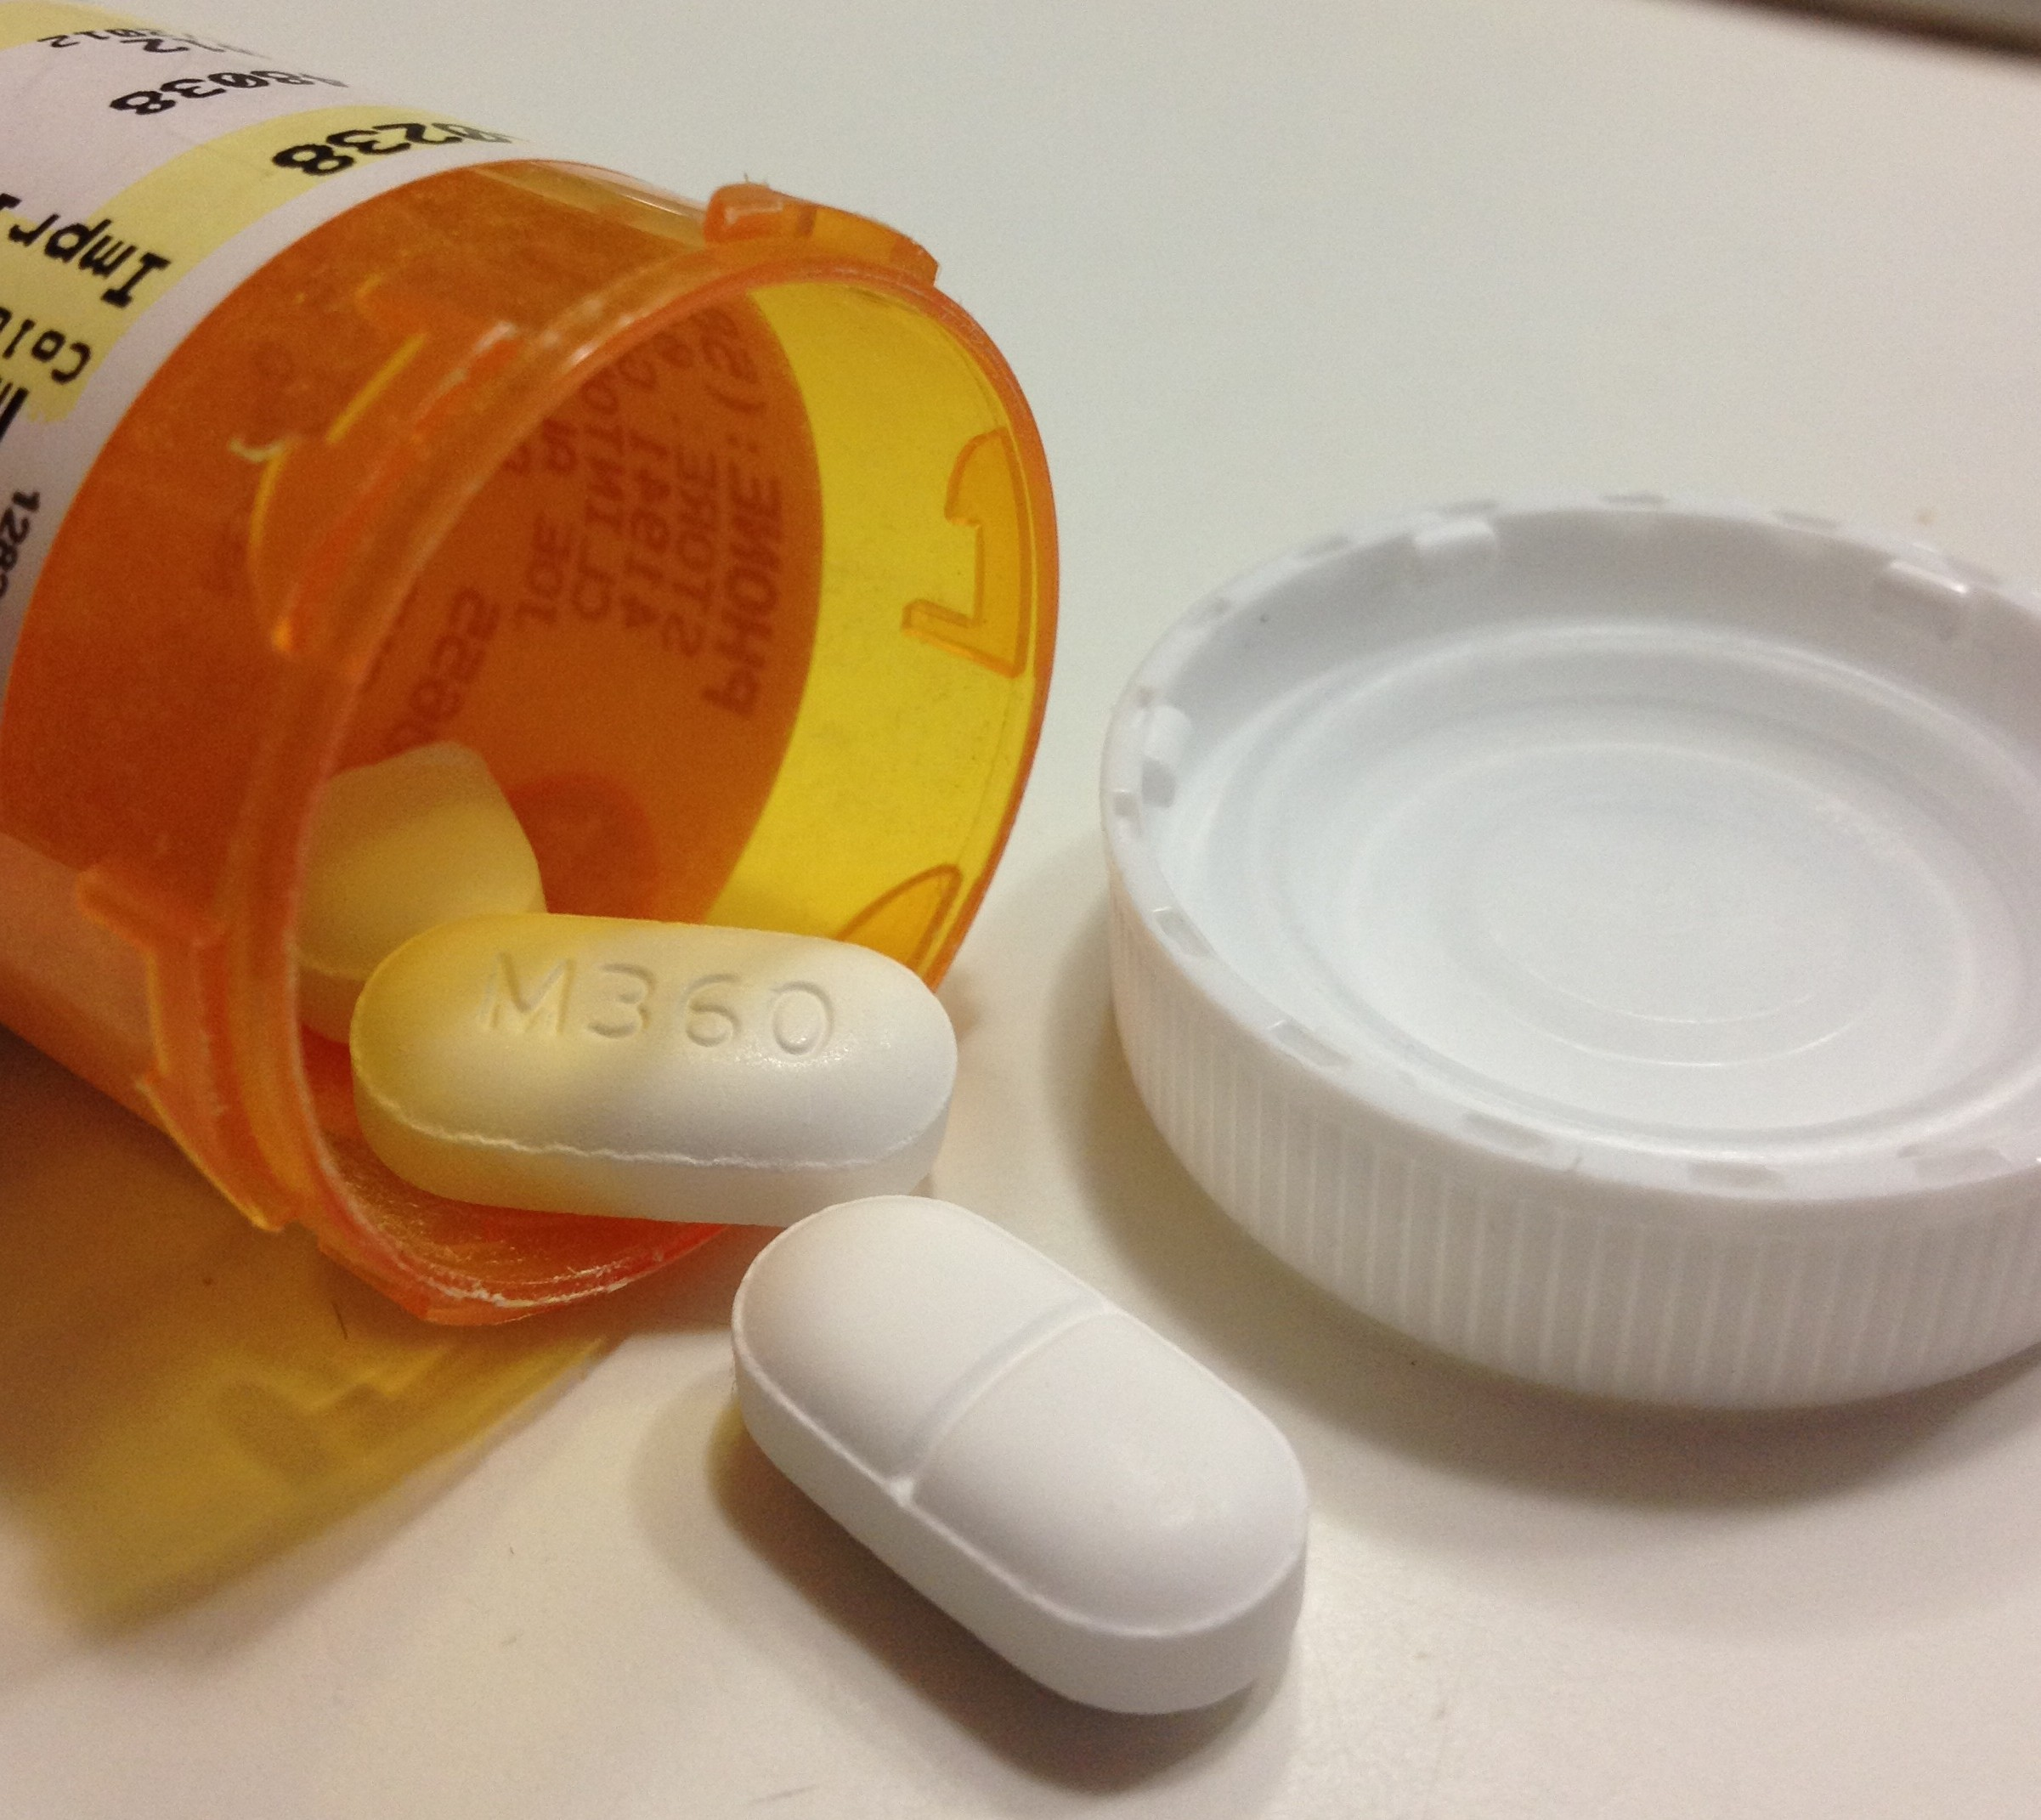 Vicodin, an opioid, is one of the prescription drugs that teenagers abuse. PHOTO/BRIANNA BUDNY